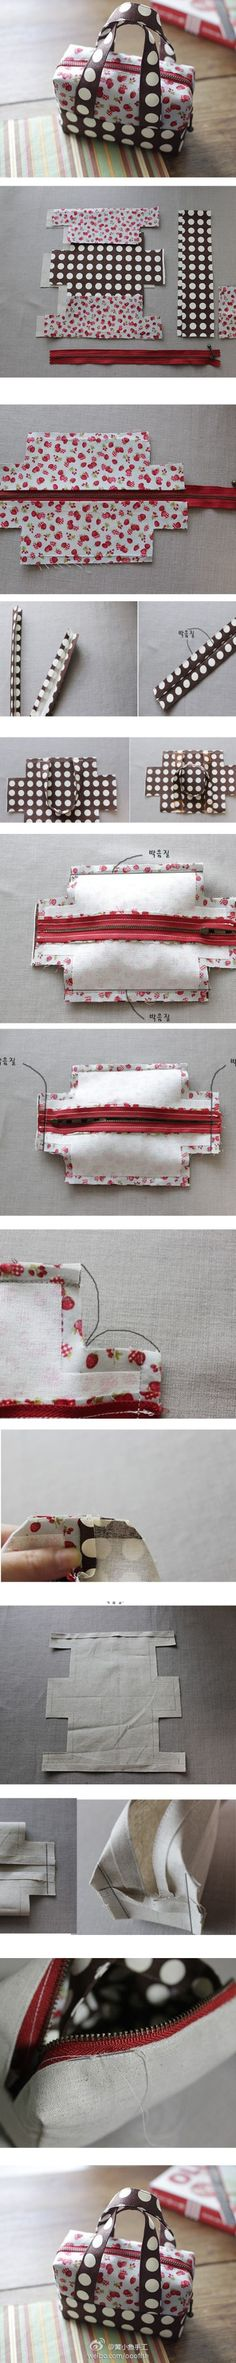 Cute DIY Bag